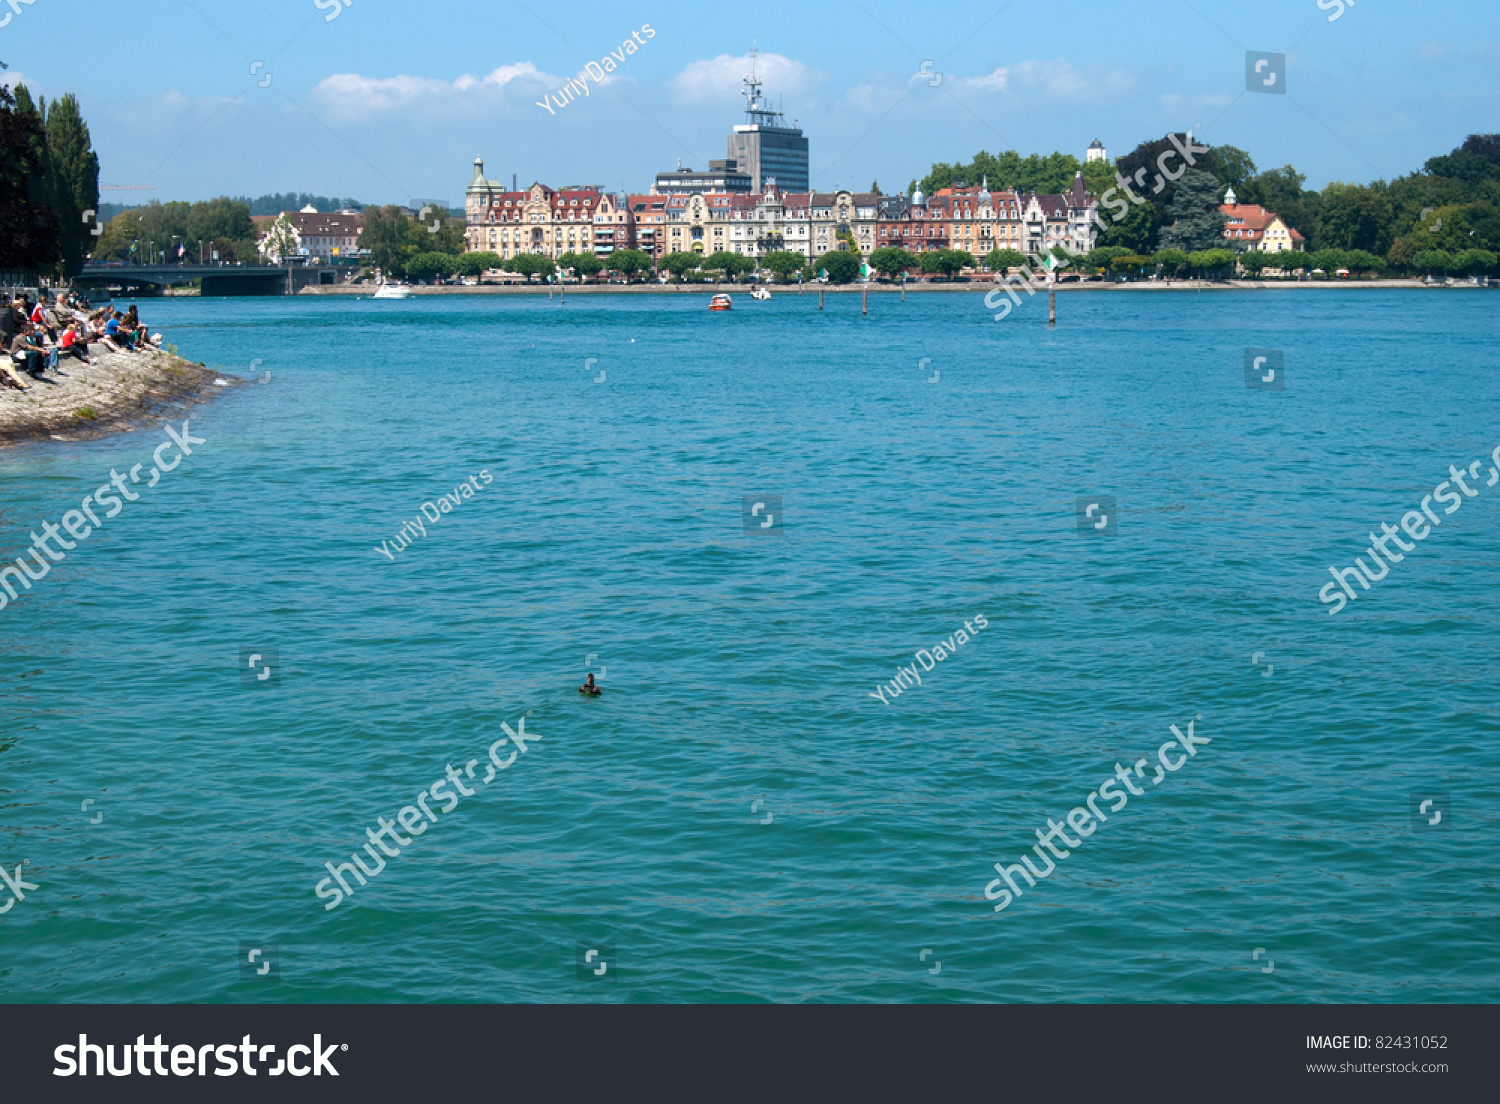 Constance city center and boden lake germany for Boden germany